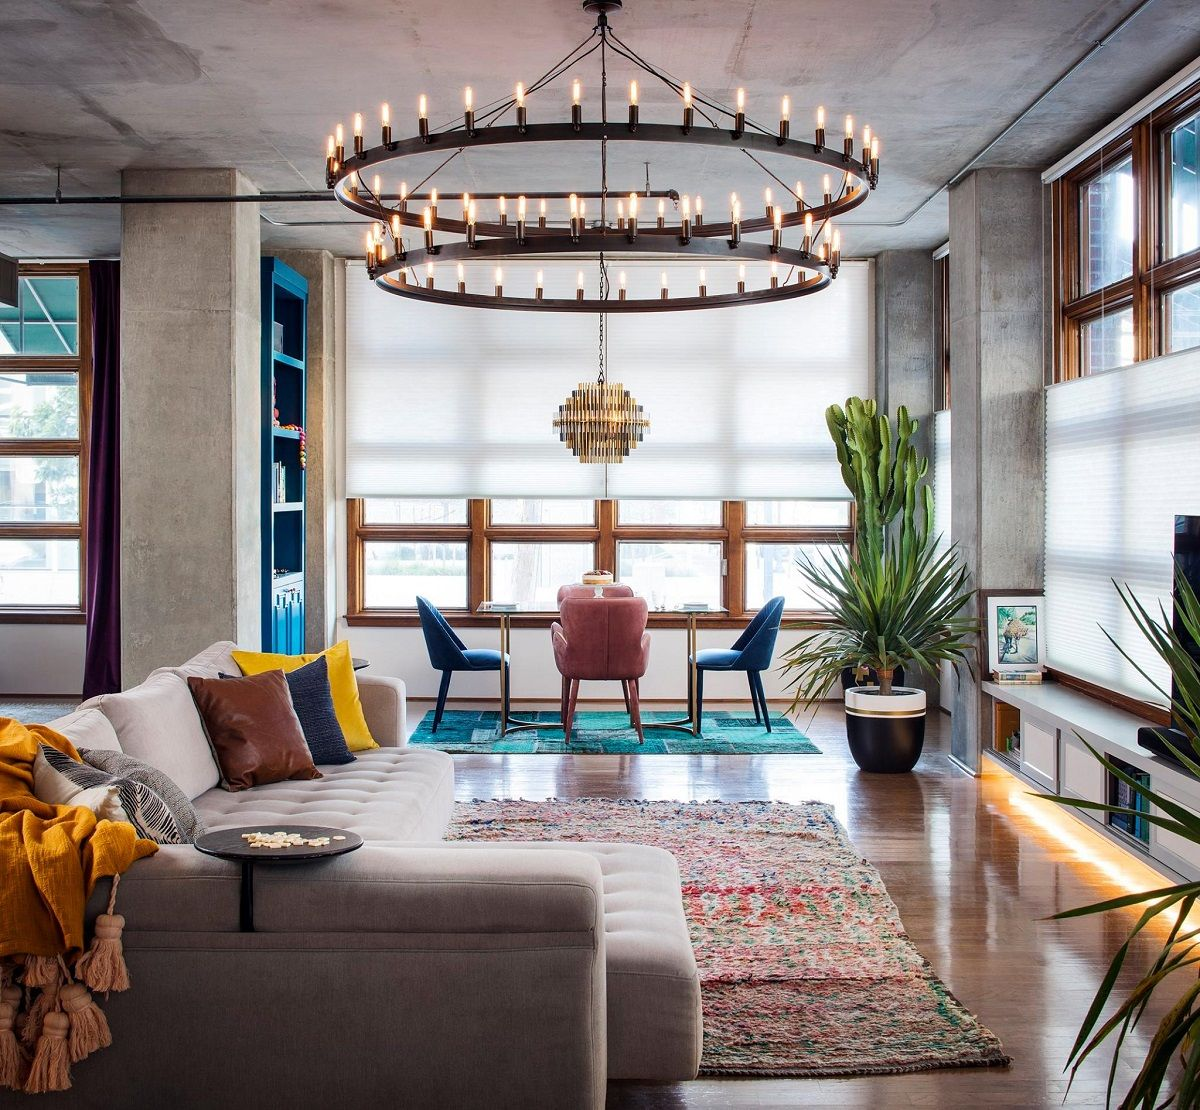 How to find an interior designer thats right for you designer interior right